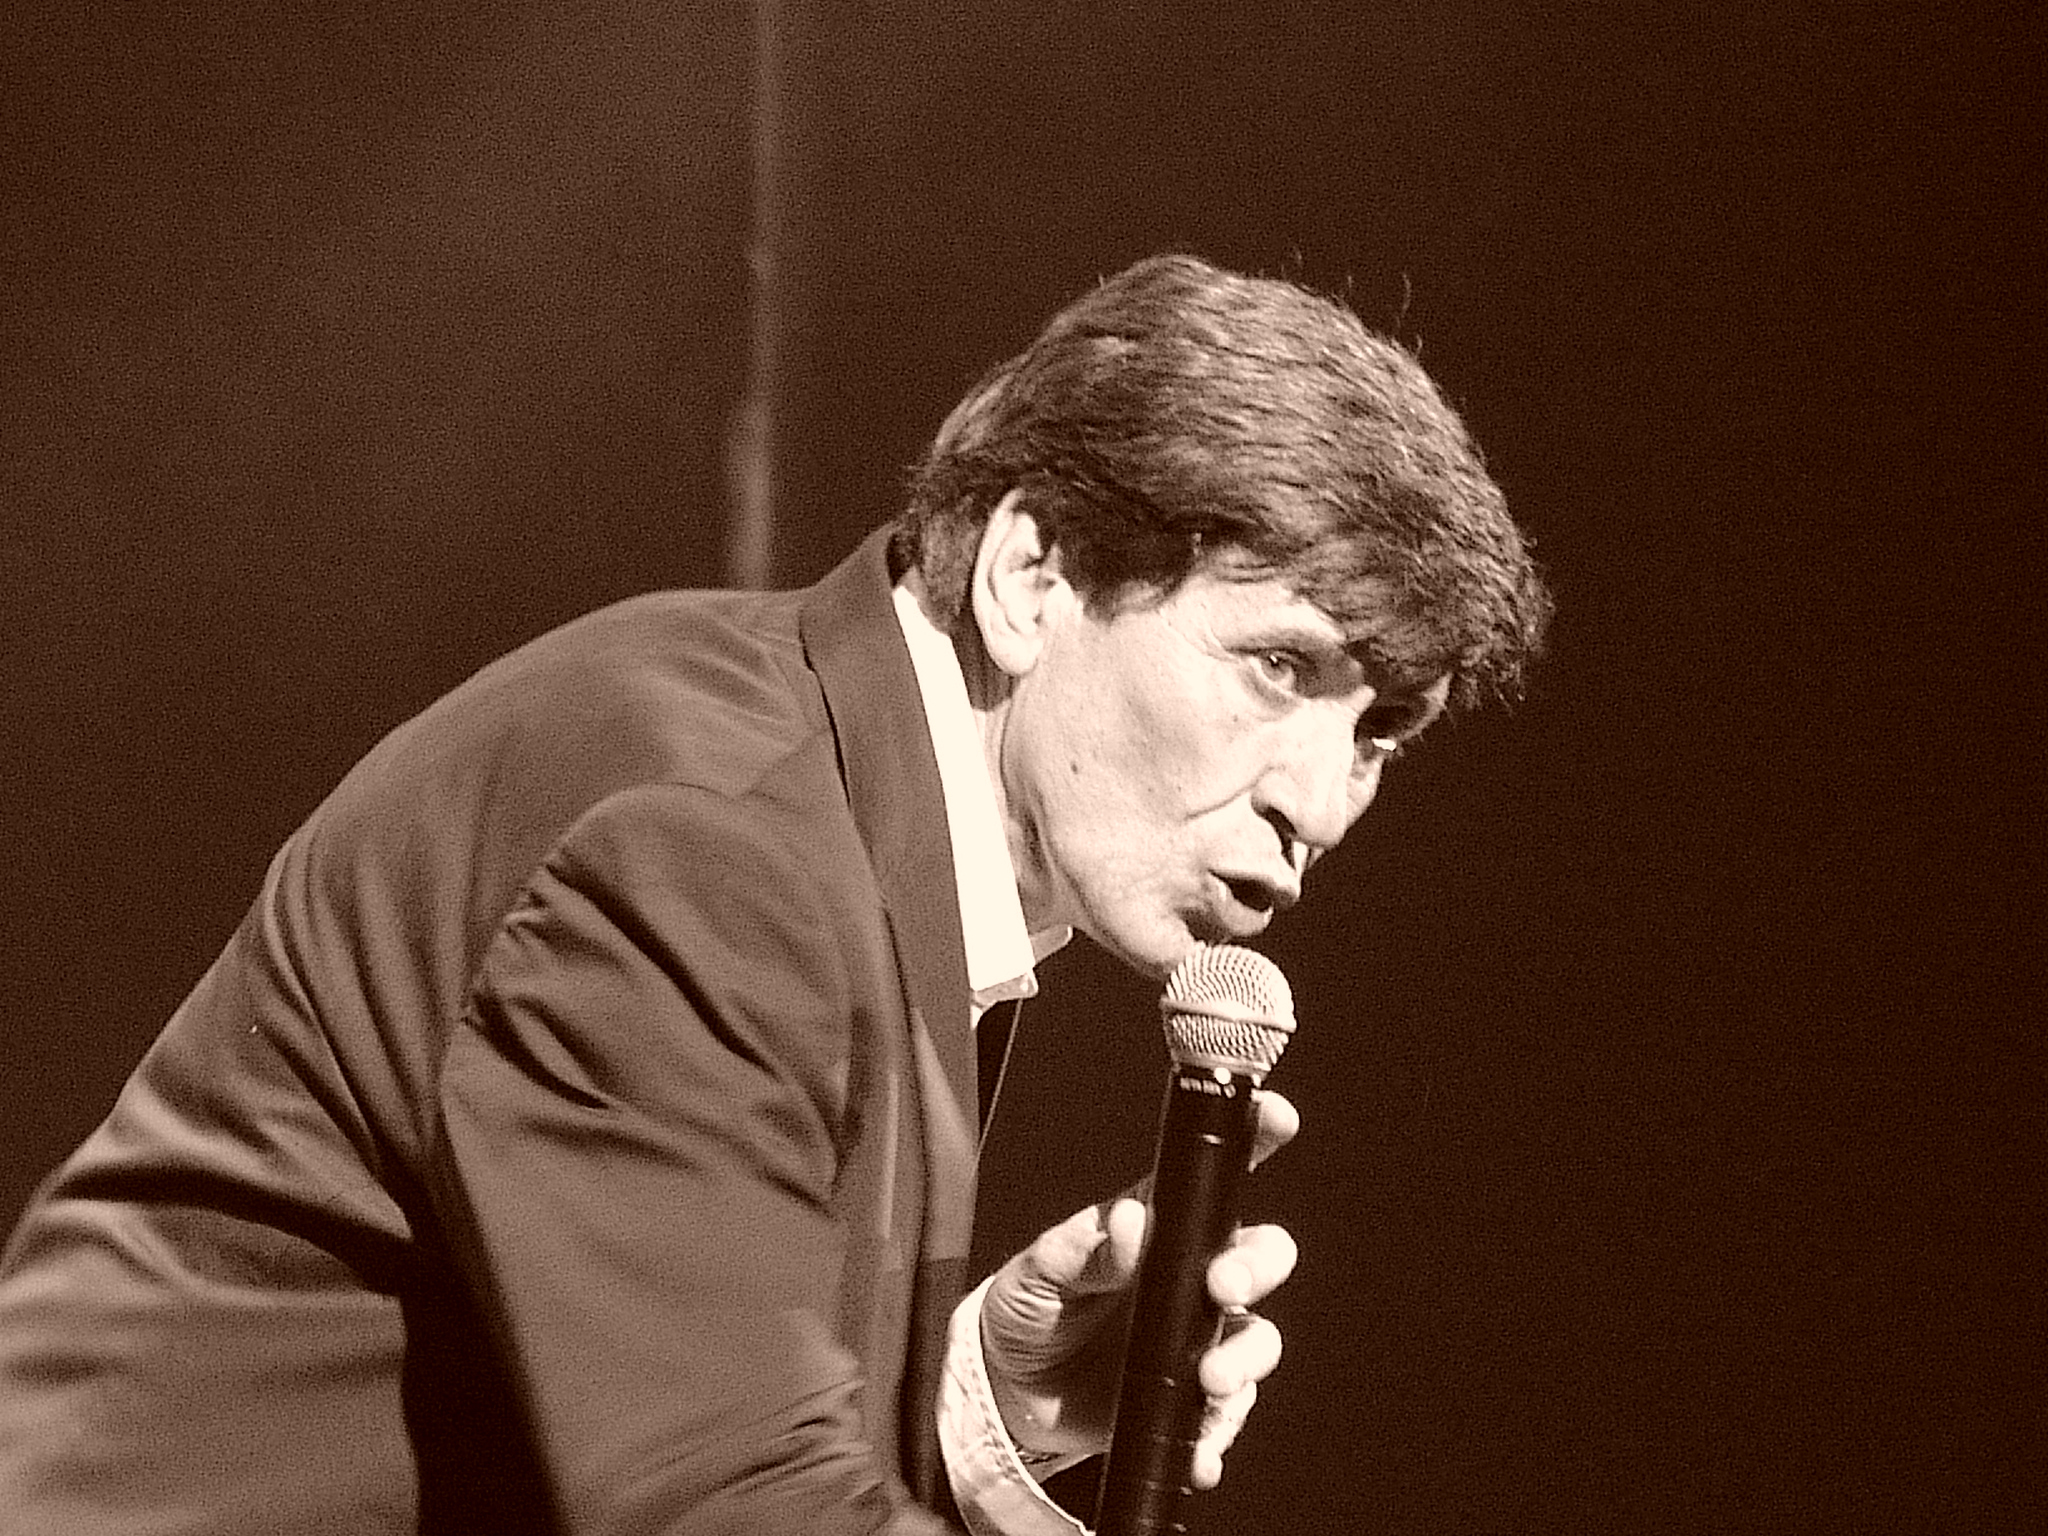 gianni morandi - photo #34